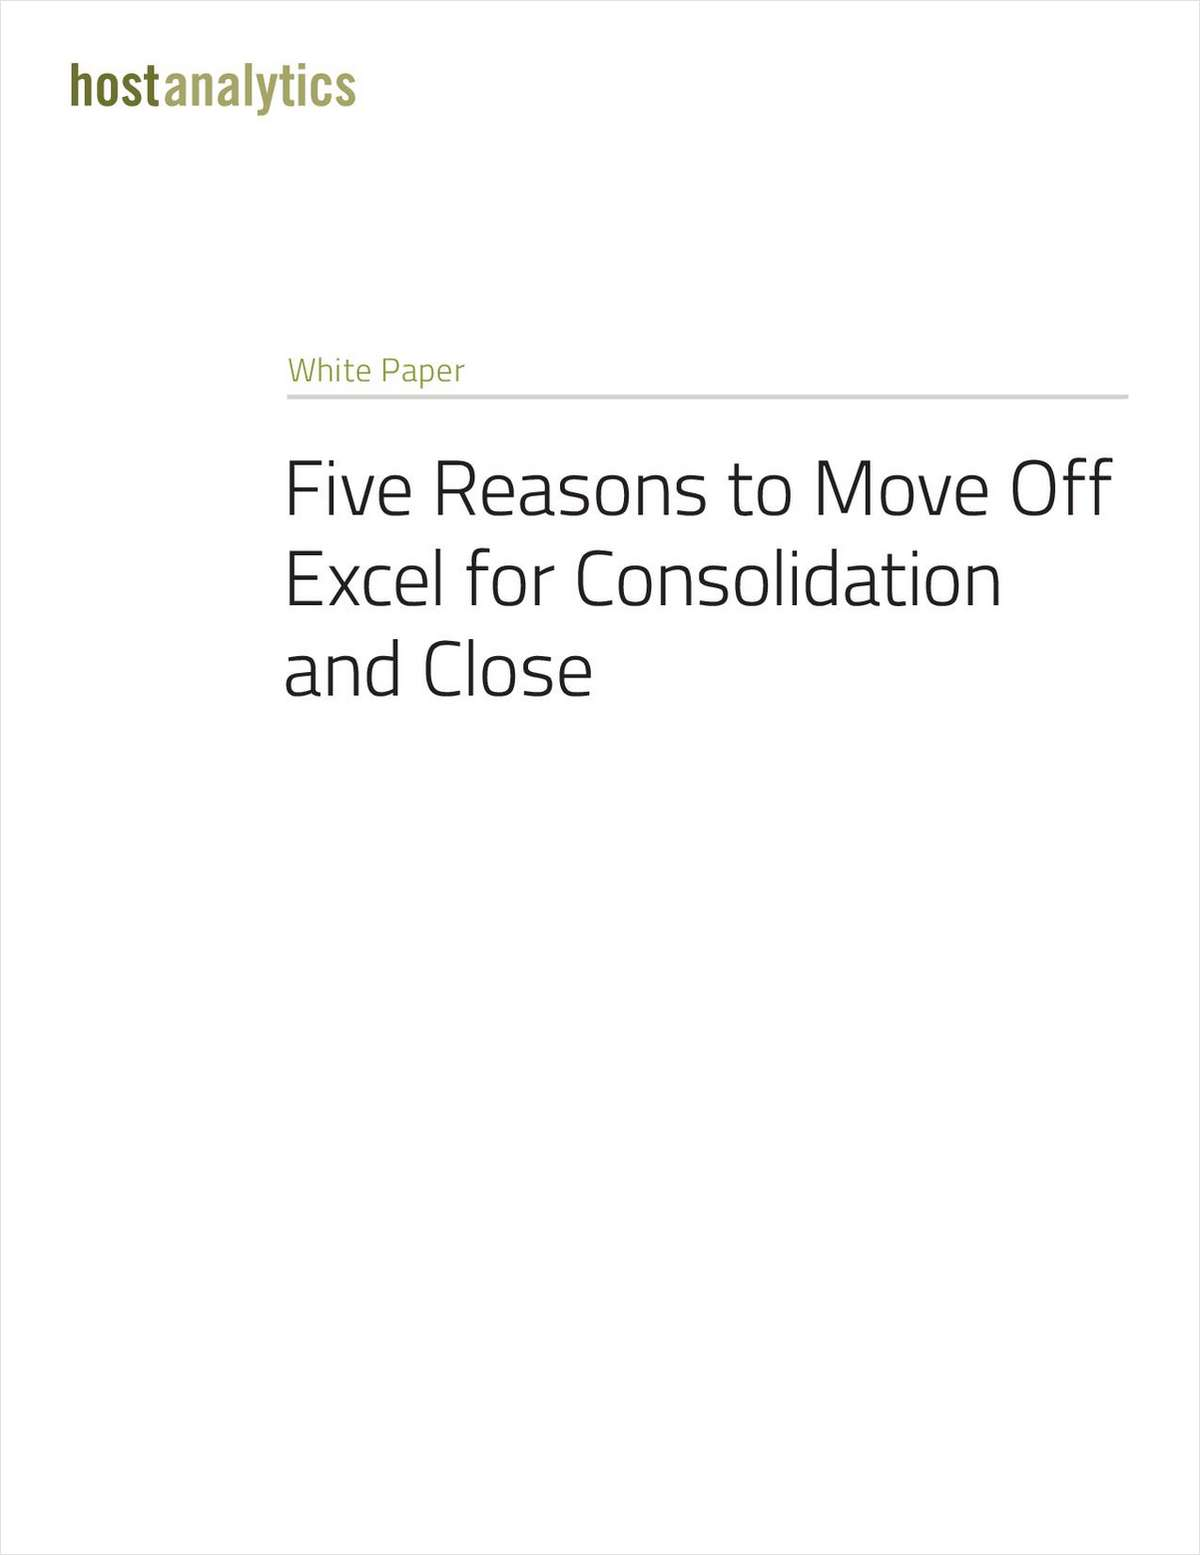 Five Reasons for Moving Off Excel for Consolidation and Close